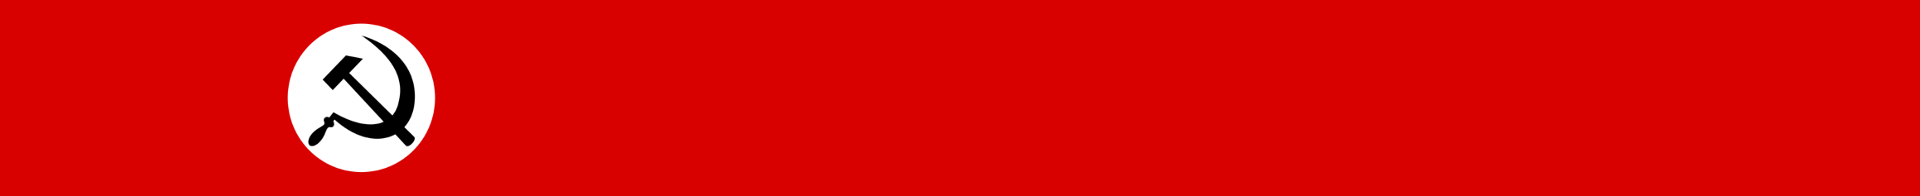 National Bolshevik Party